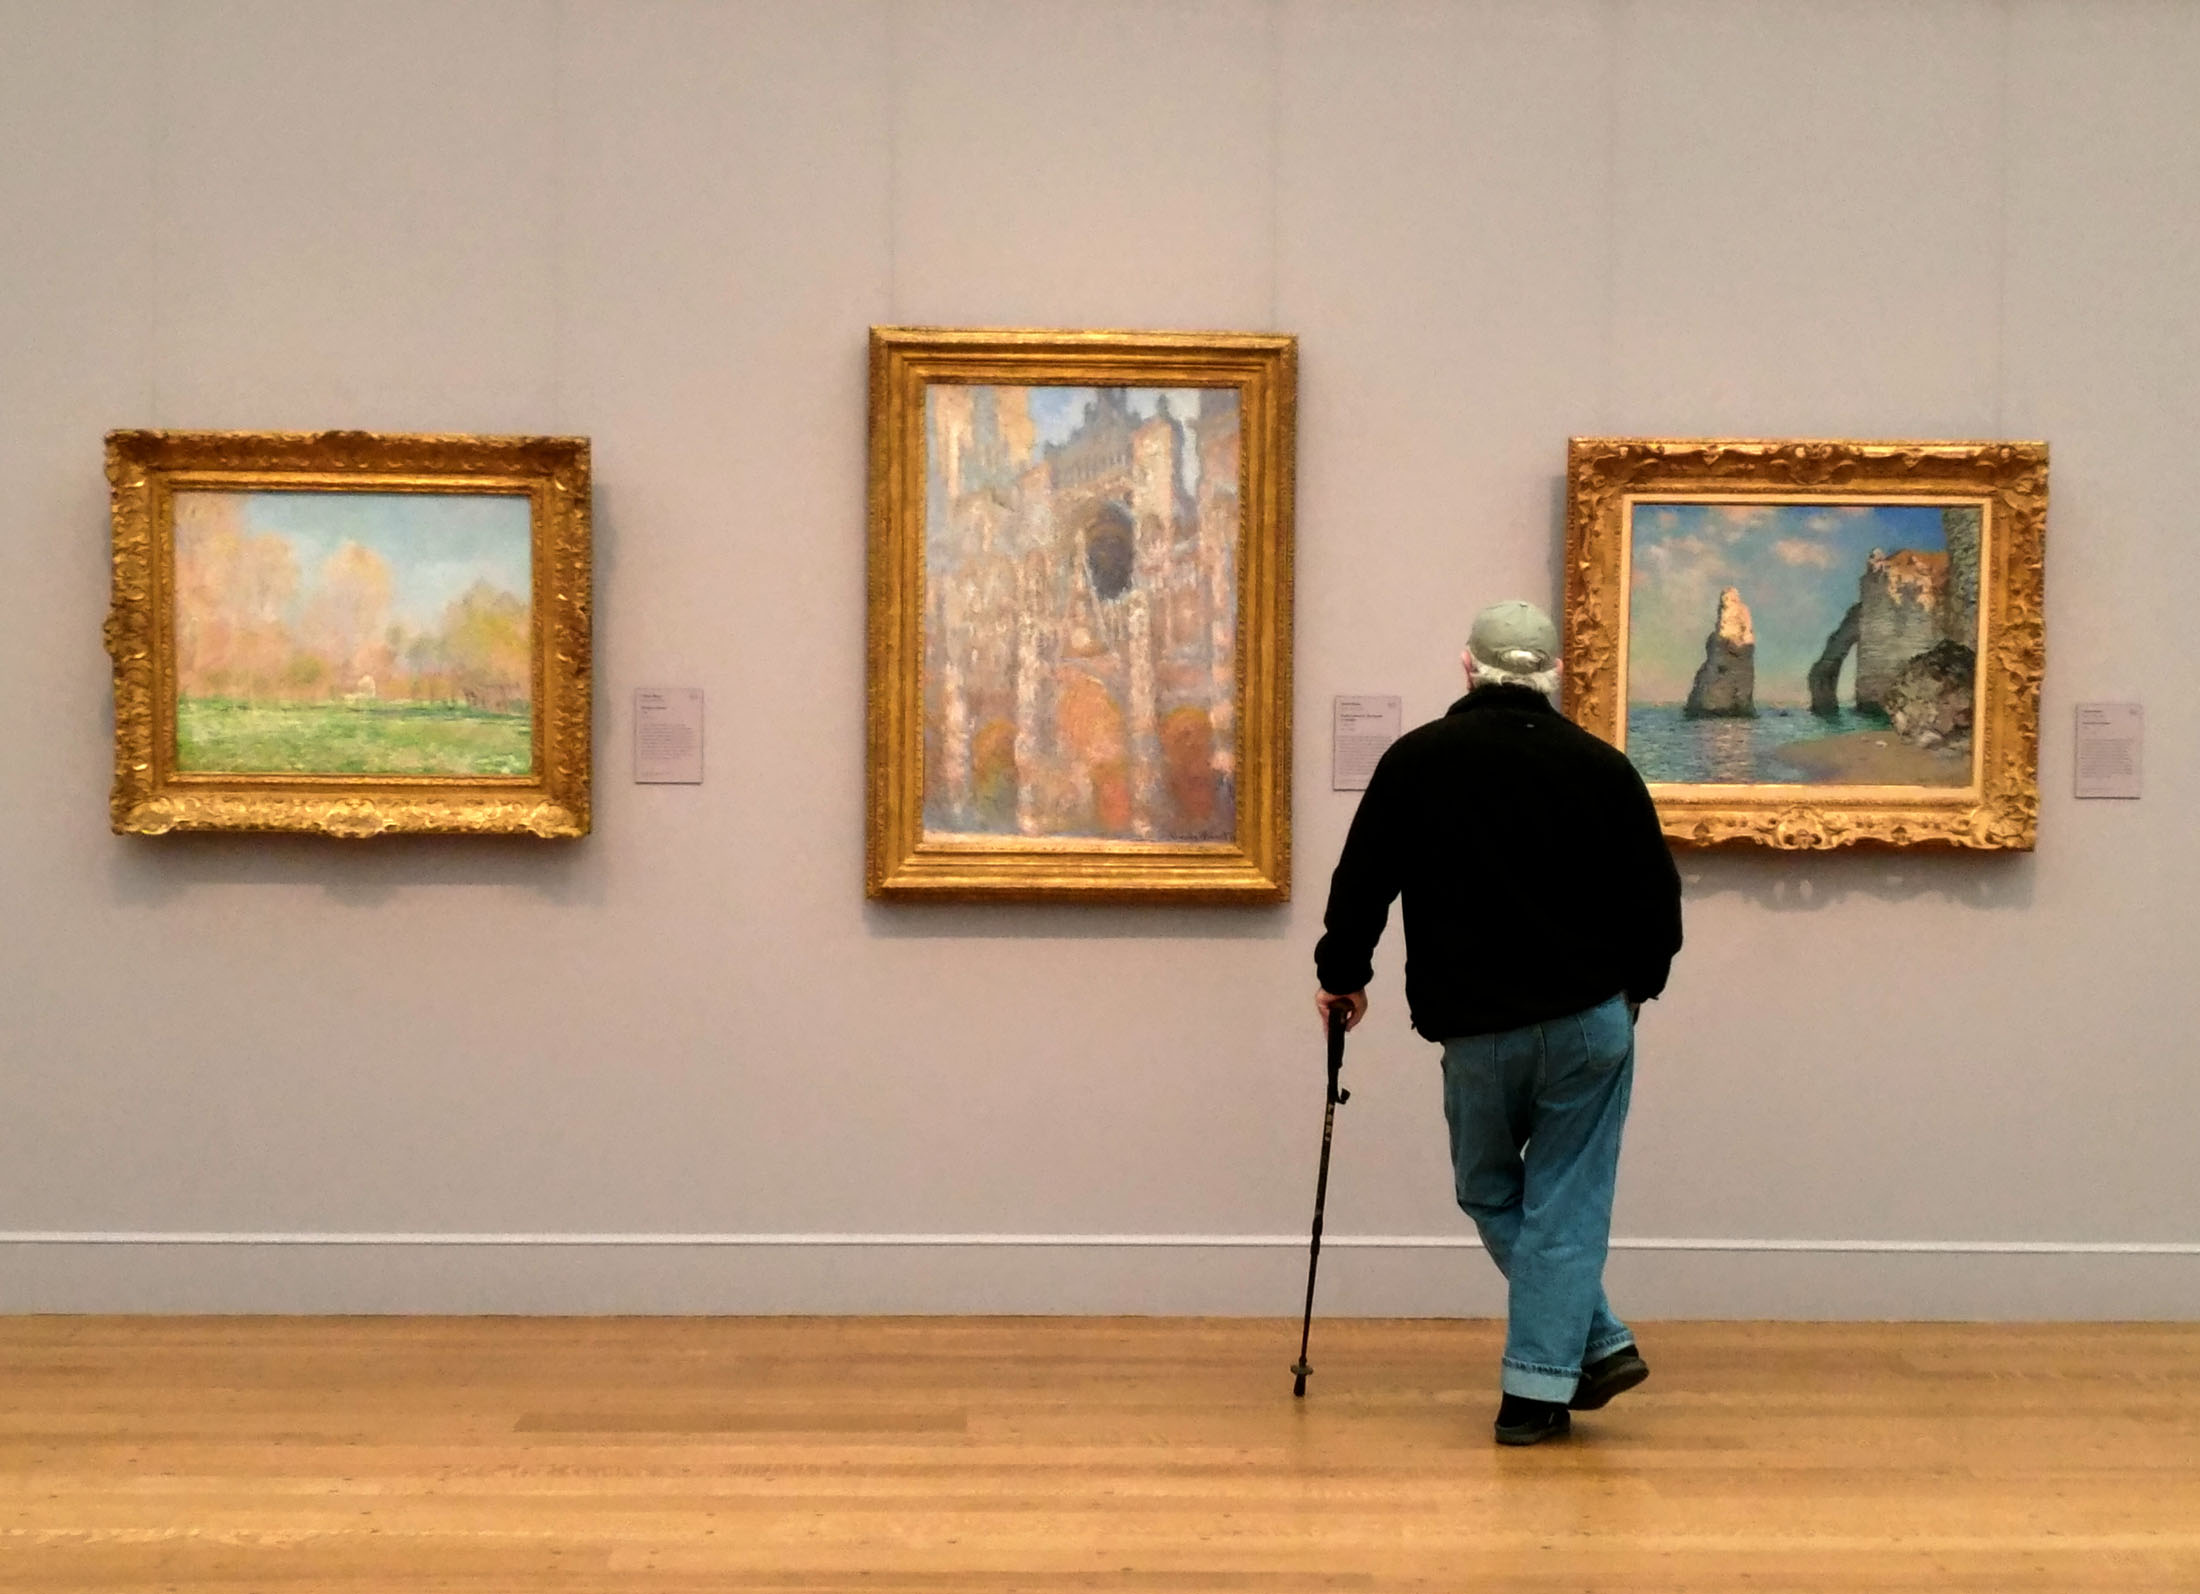 The Clark Art Institute in Williamstown, Mass., features an extensive collection of the works of Claude Monet and other French Impressionists. (Craig Davis/CraigslegzTravels.com)